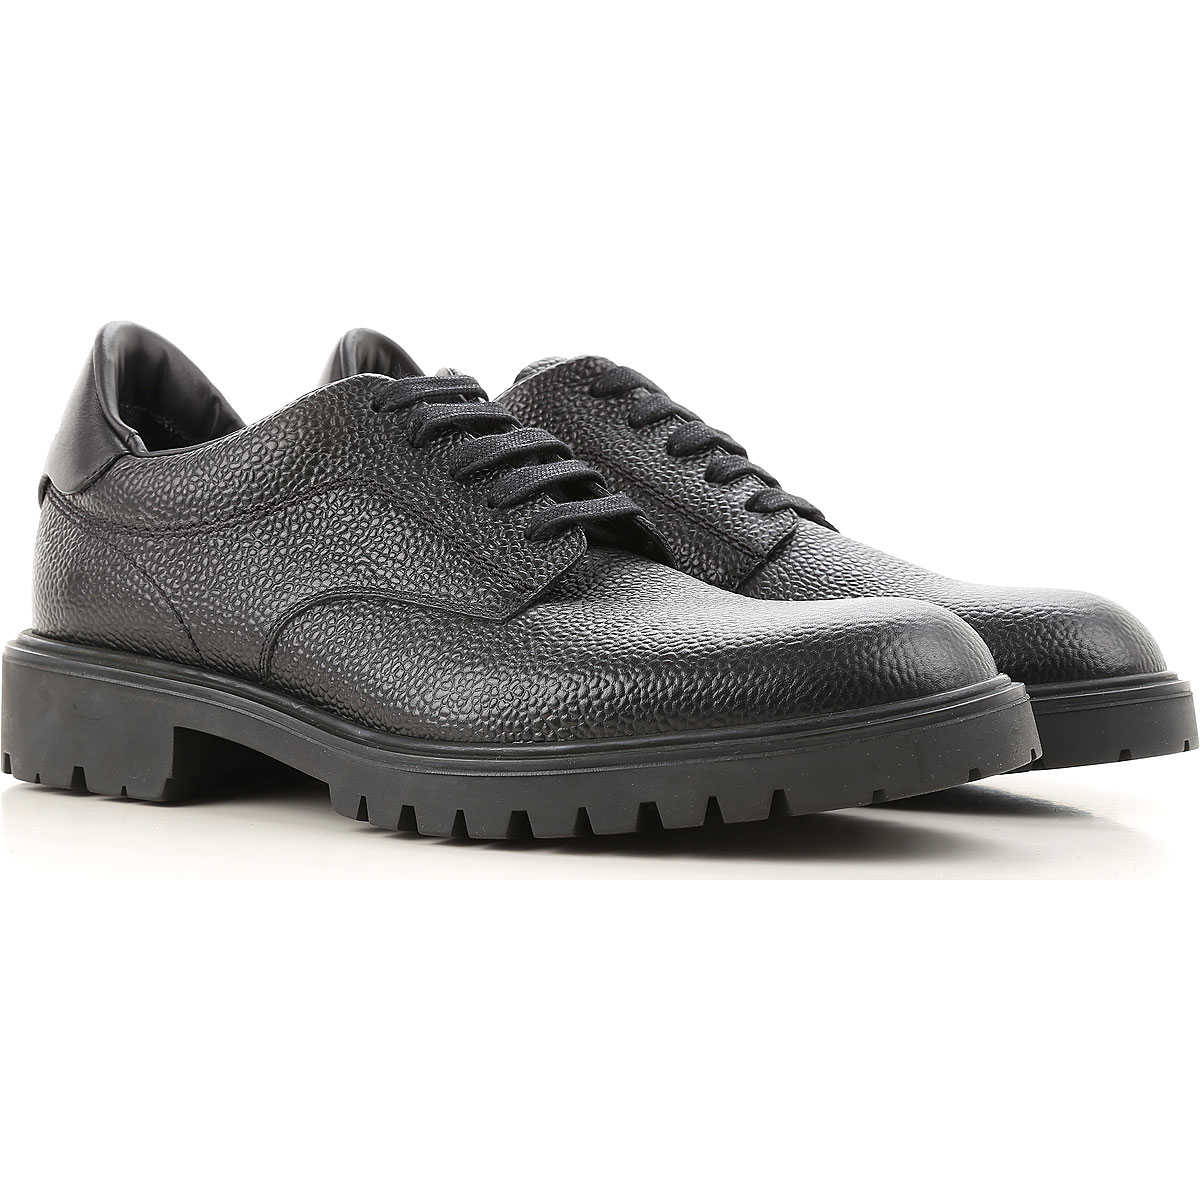 Dsquared2 Brogue Shoes On Sale in Outlet